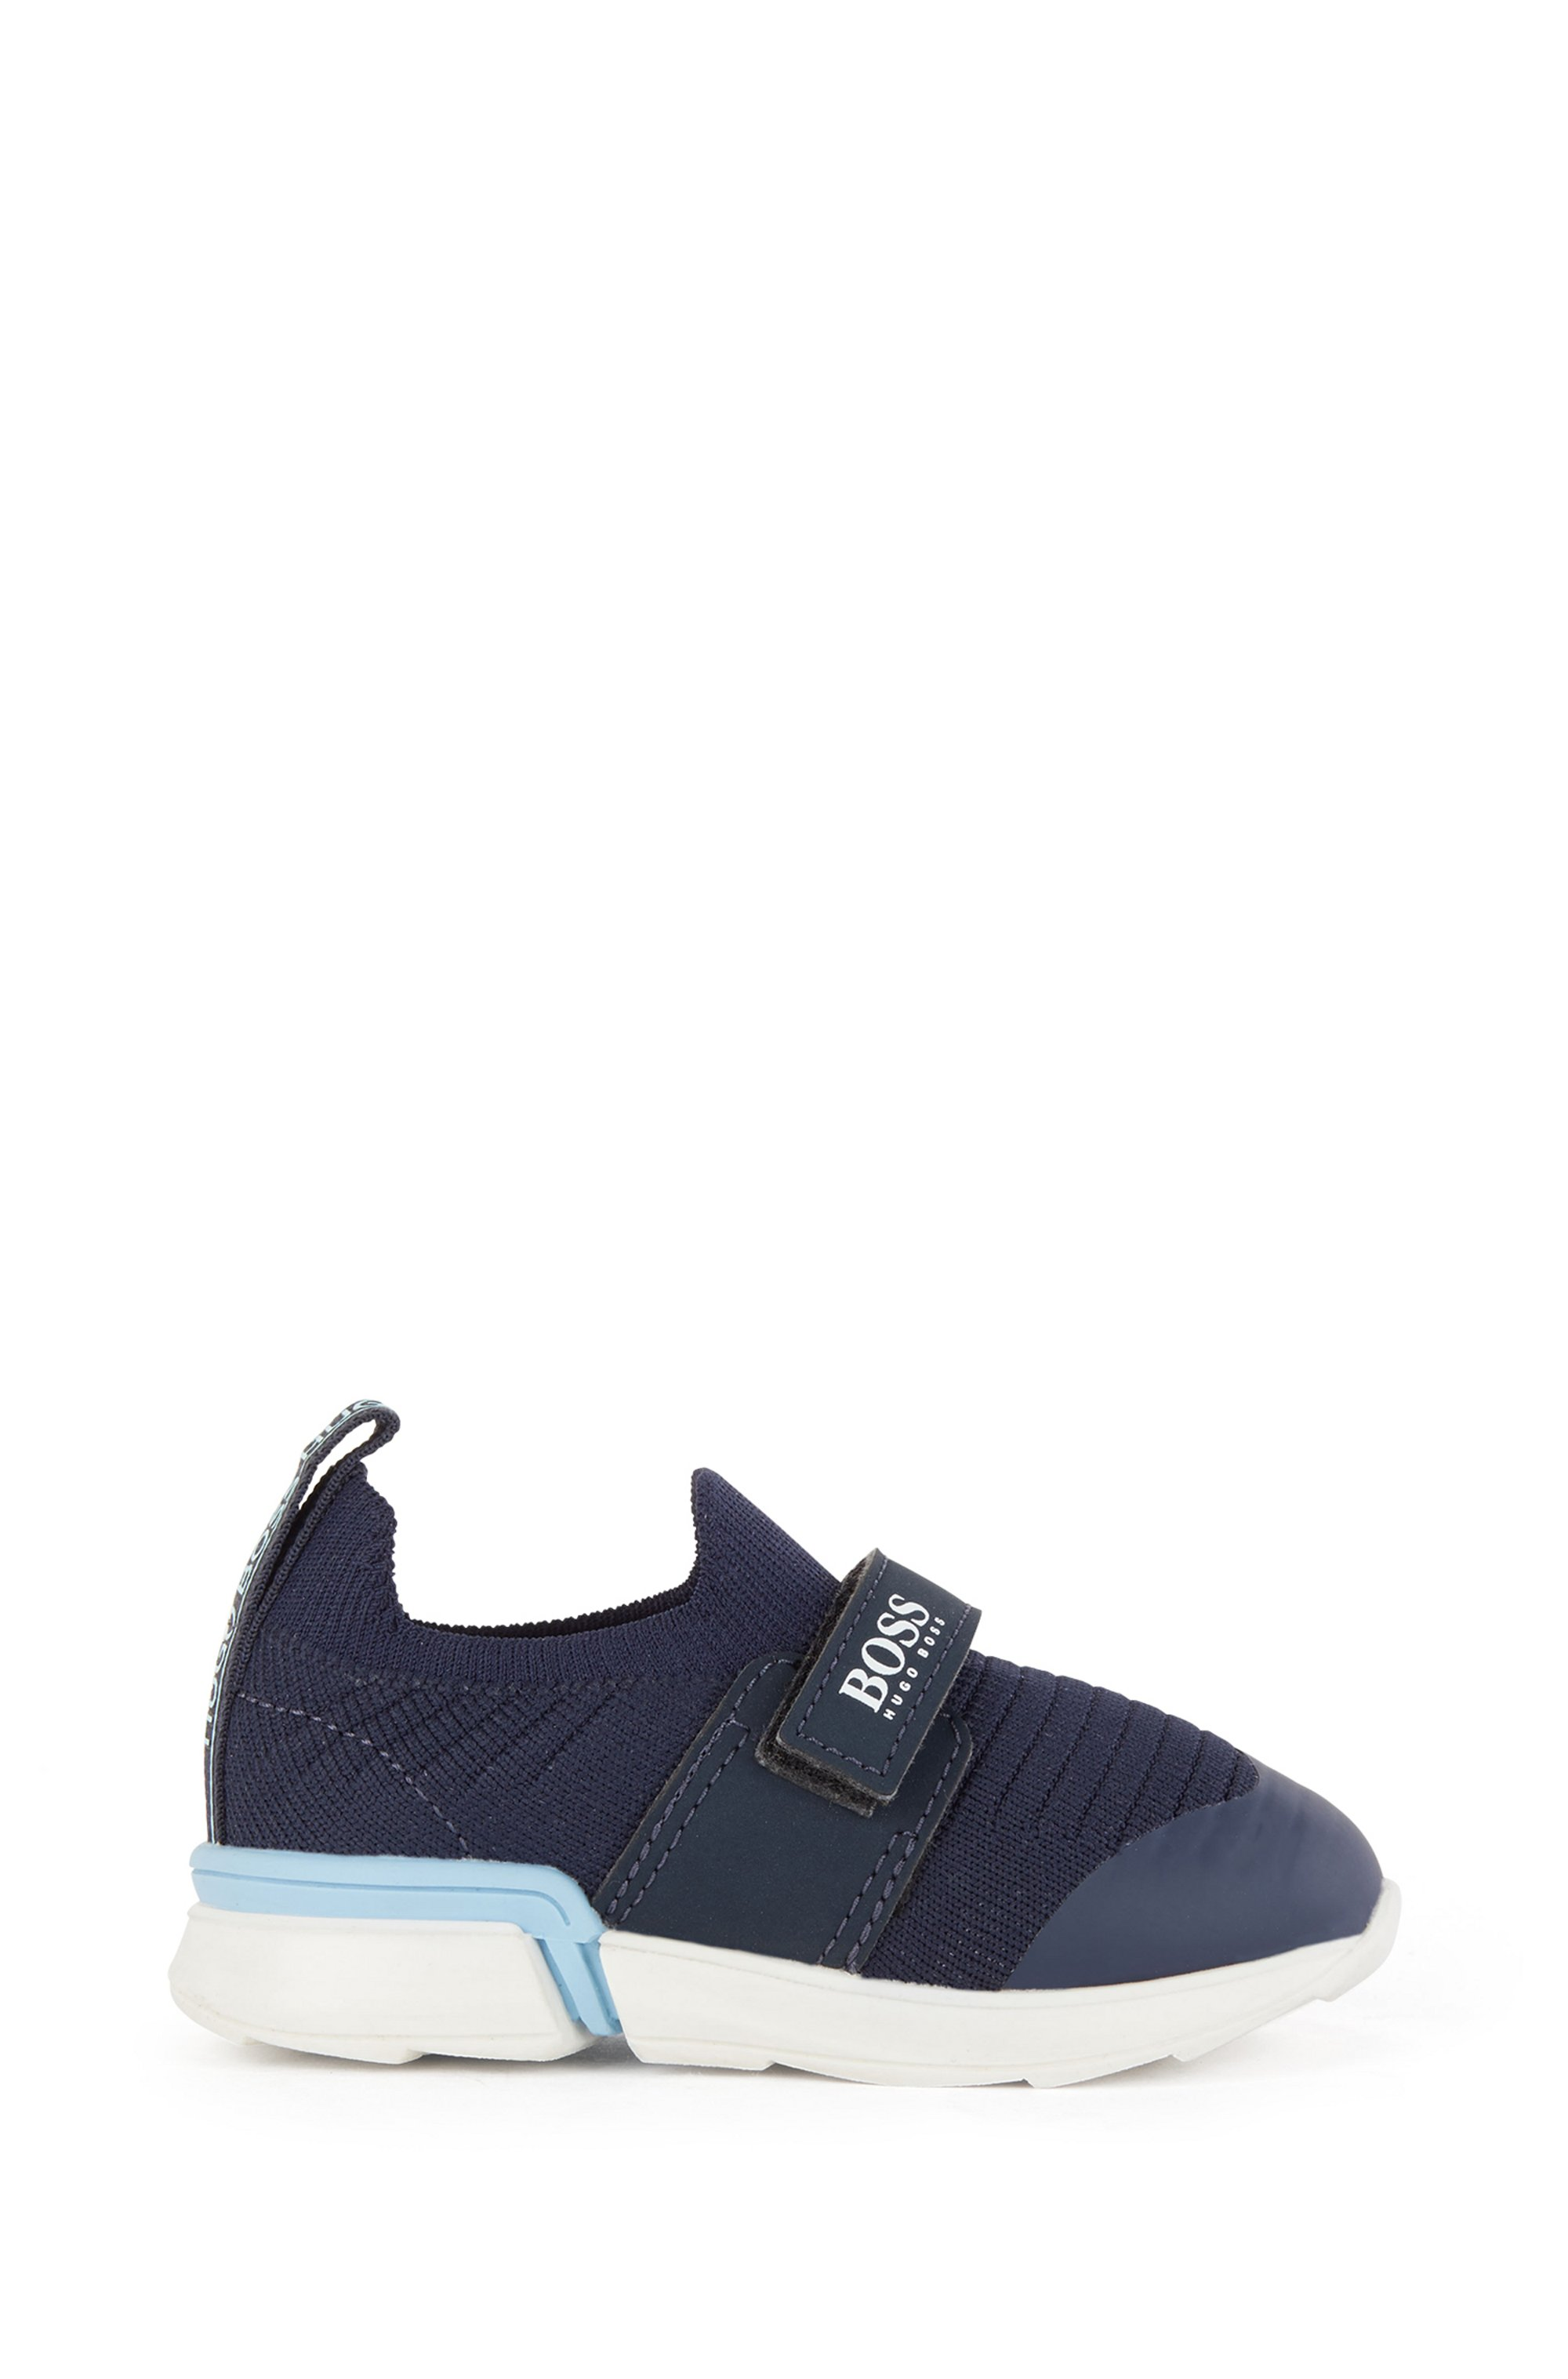 Kids' sock trainers with logo strap